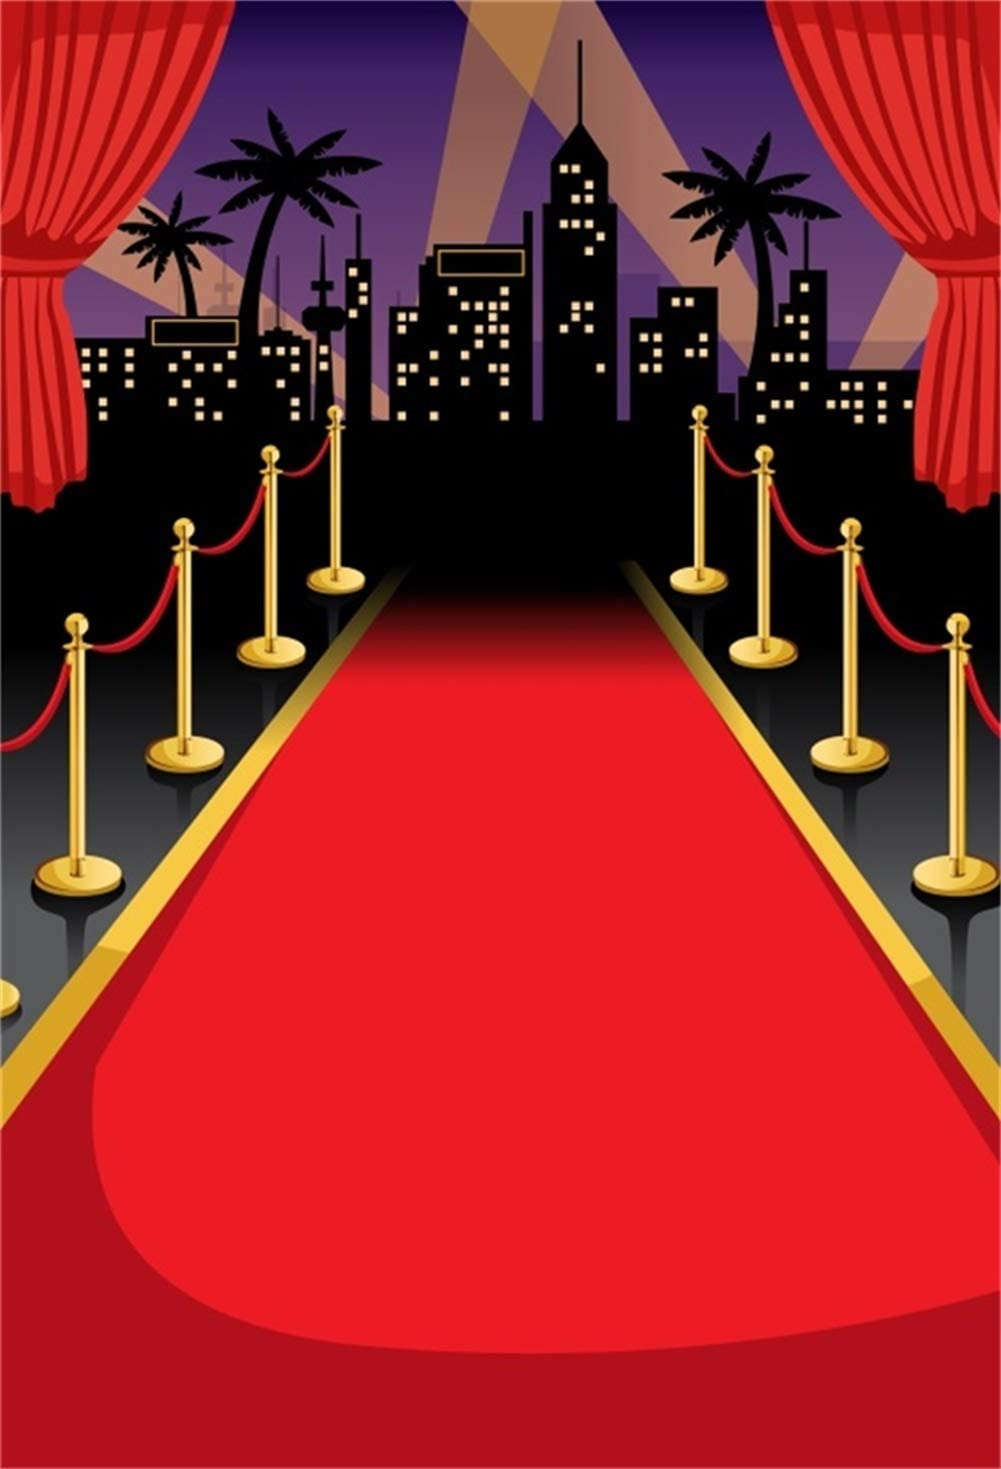 6X8FT-City Night Lighting Building Photography Backdrops Red Carpet Car Photo Studio Background